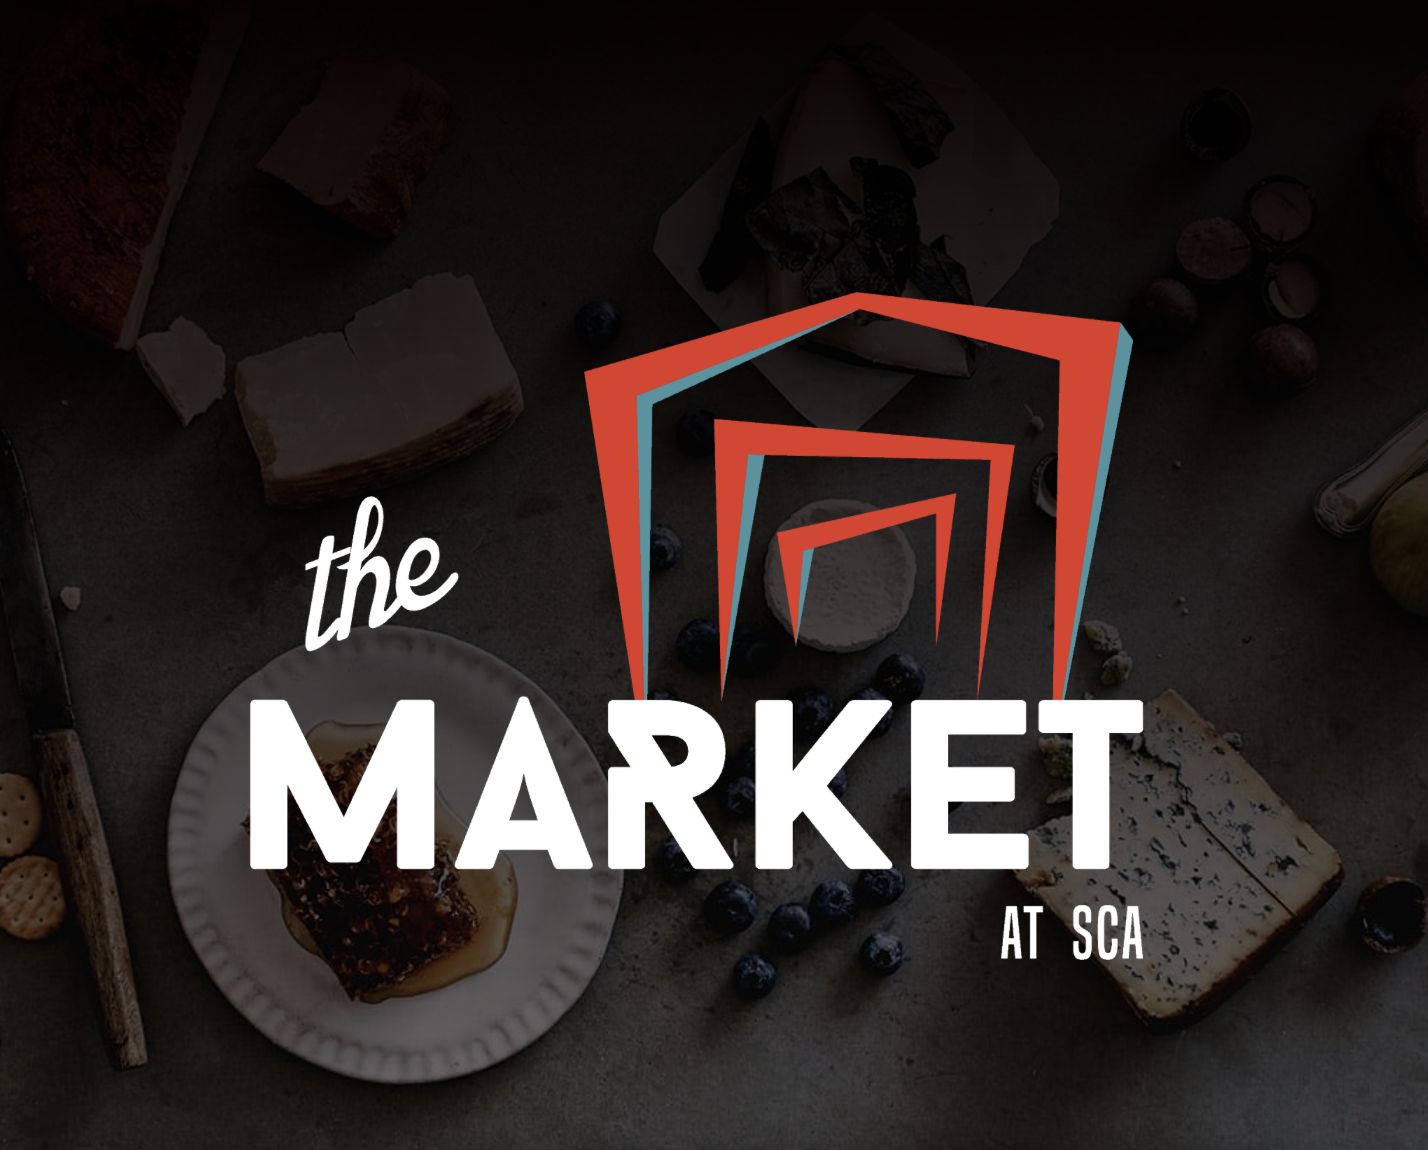 The market at sca